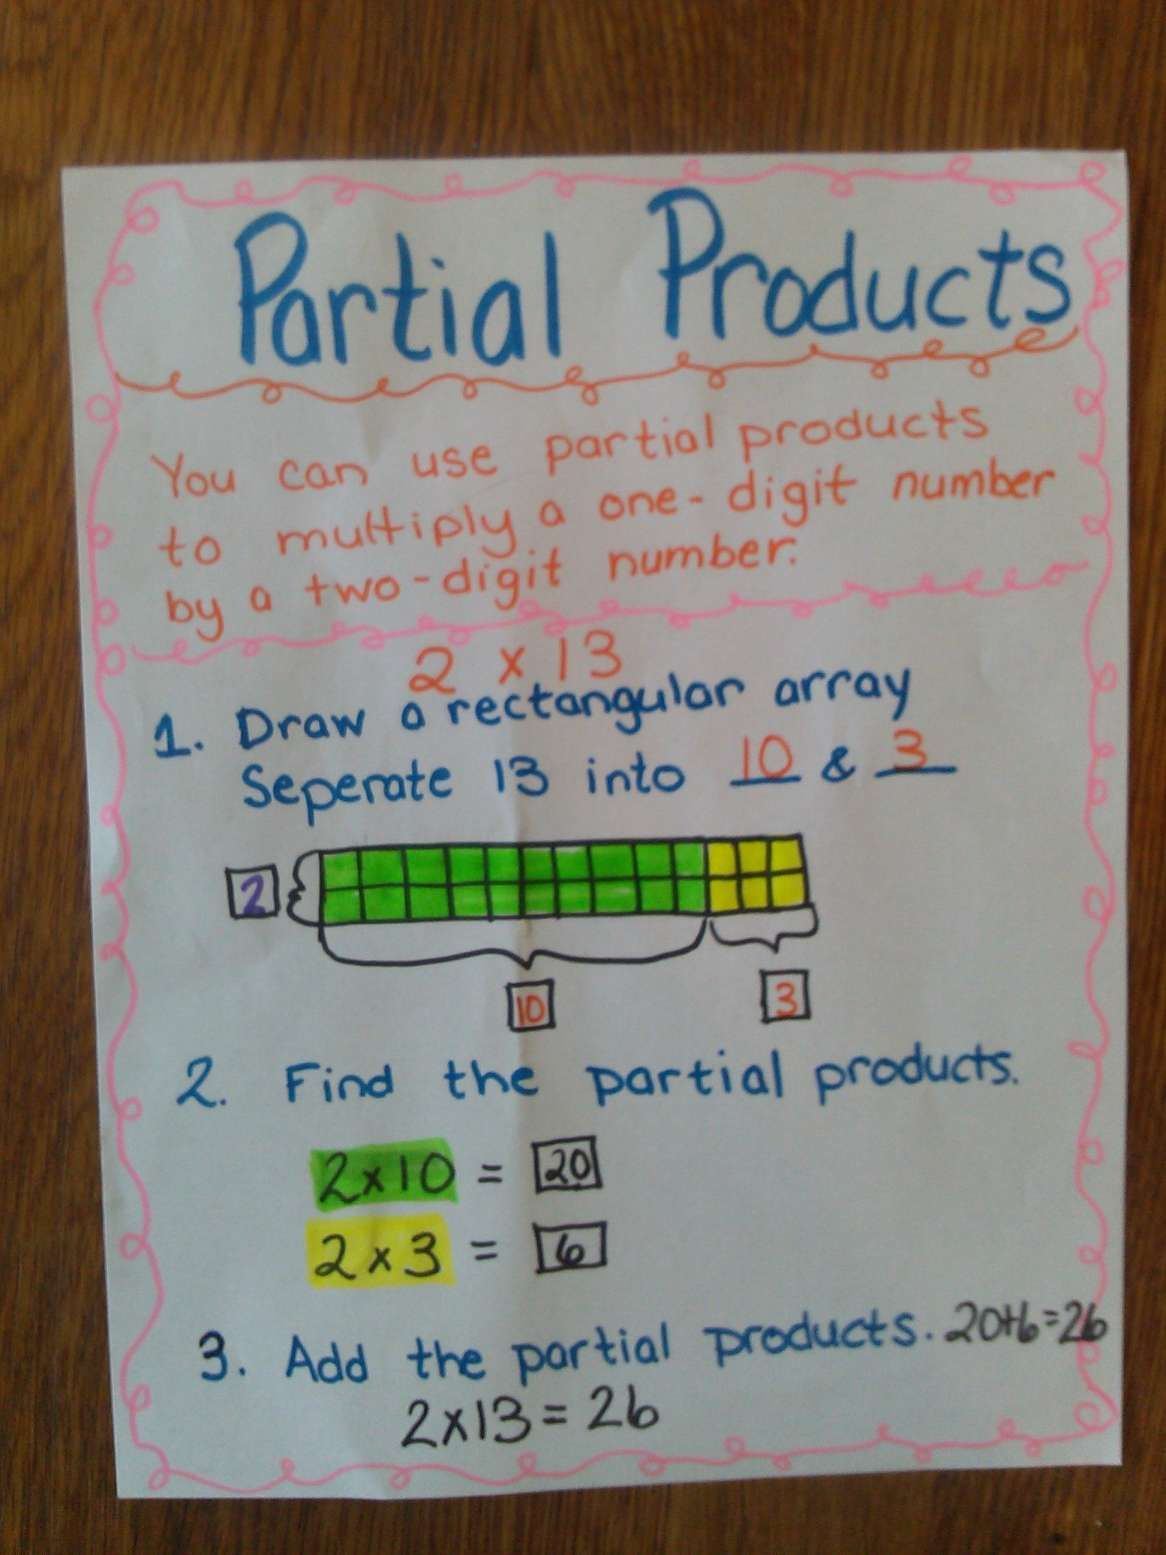 11 Everyday Math Partial Products Worksheet